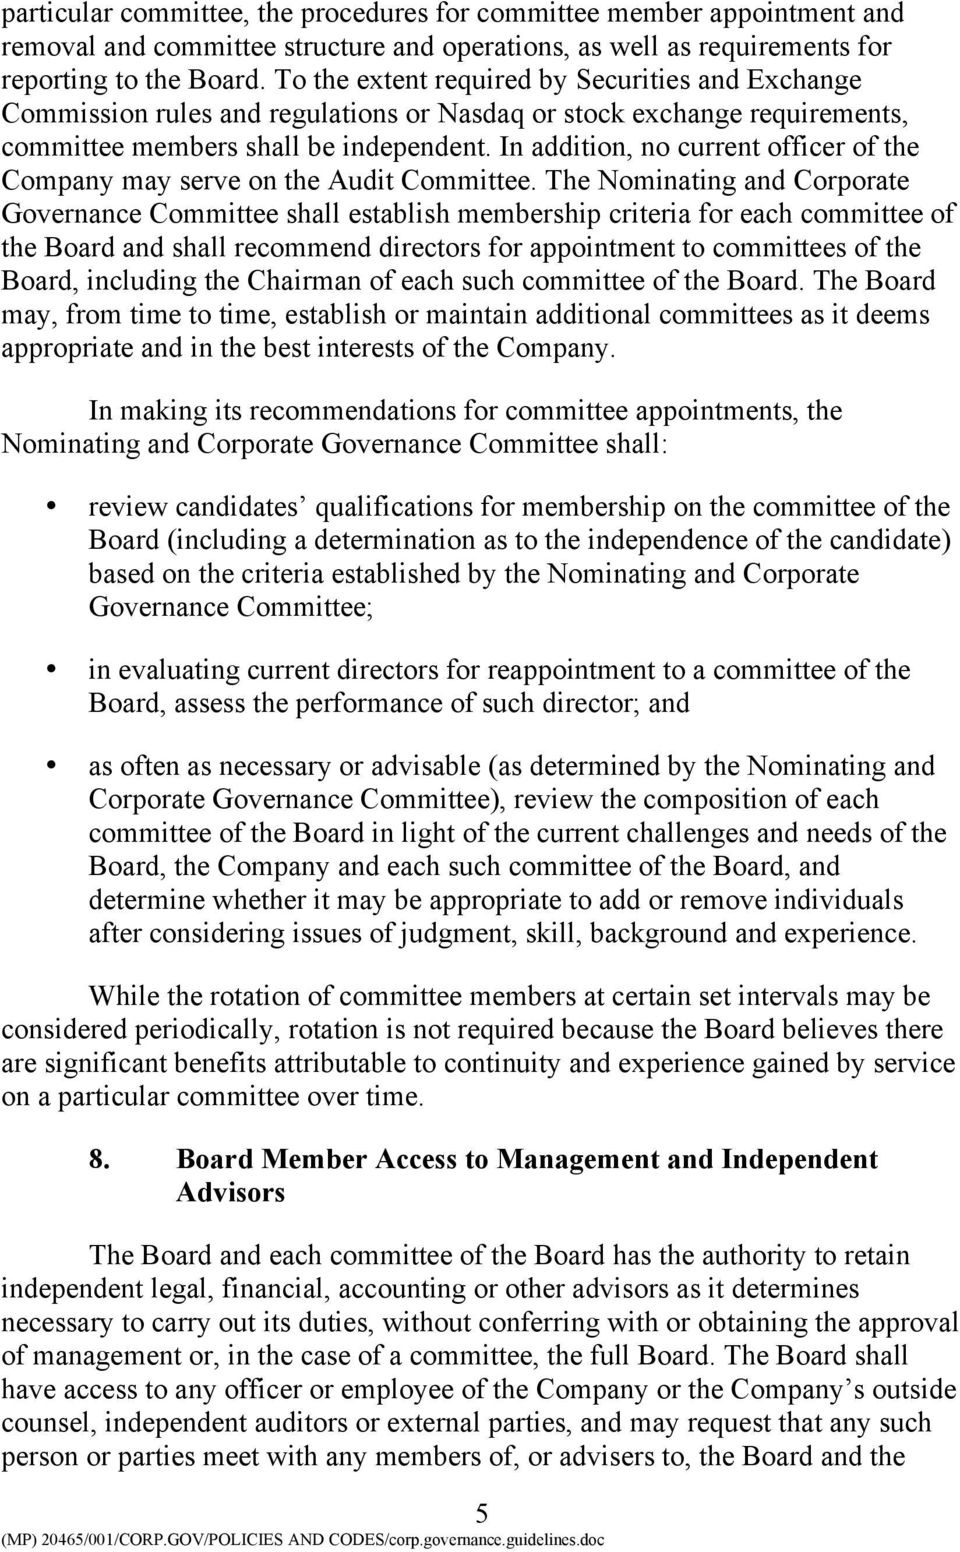 In addition, no current officer of the Company may serve on the Audit Committee.